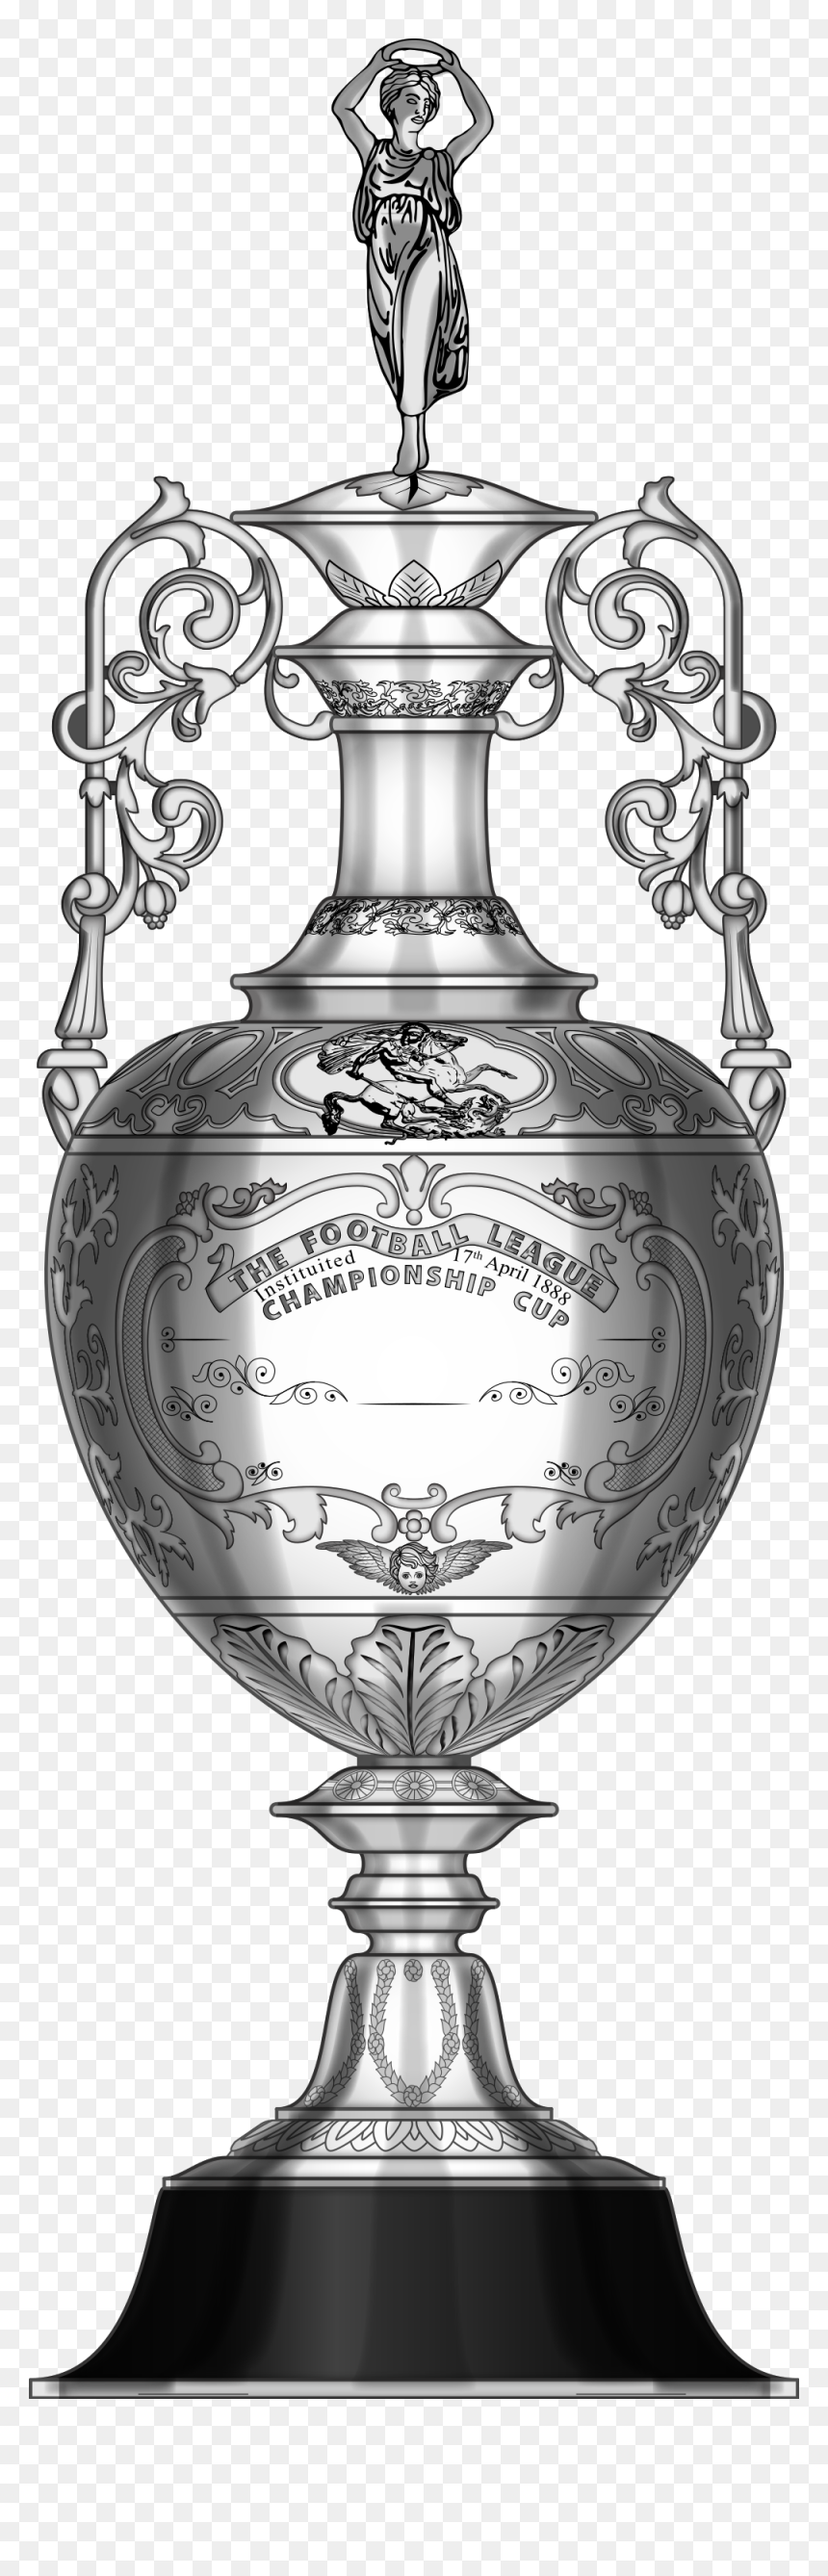 uefa champions league cup svg png download english football league championship trophy transparent png vhv uefa champions league cup svg png